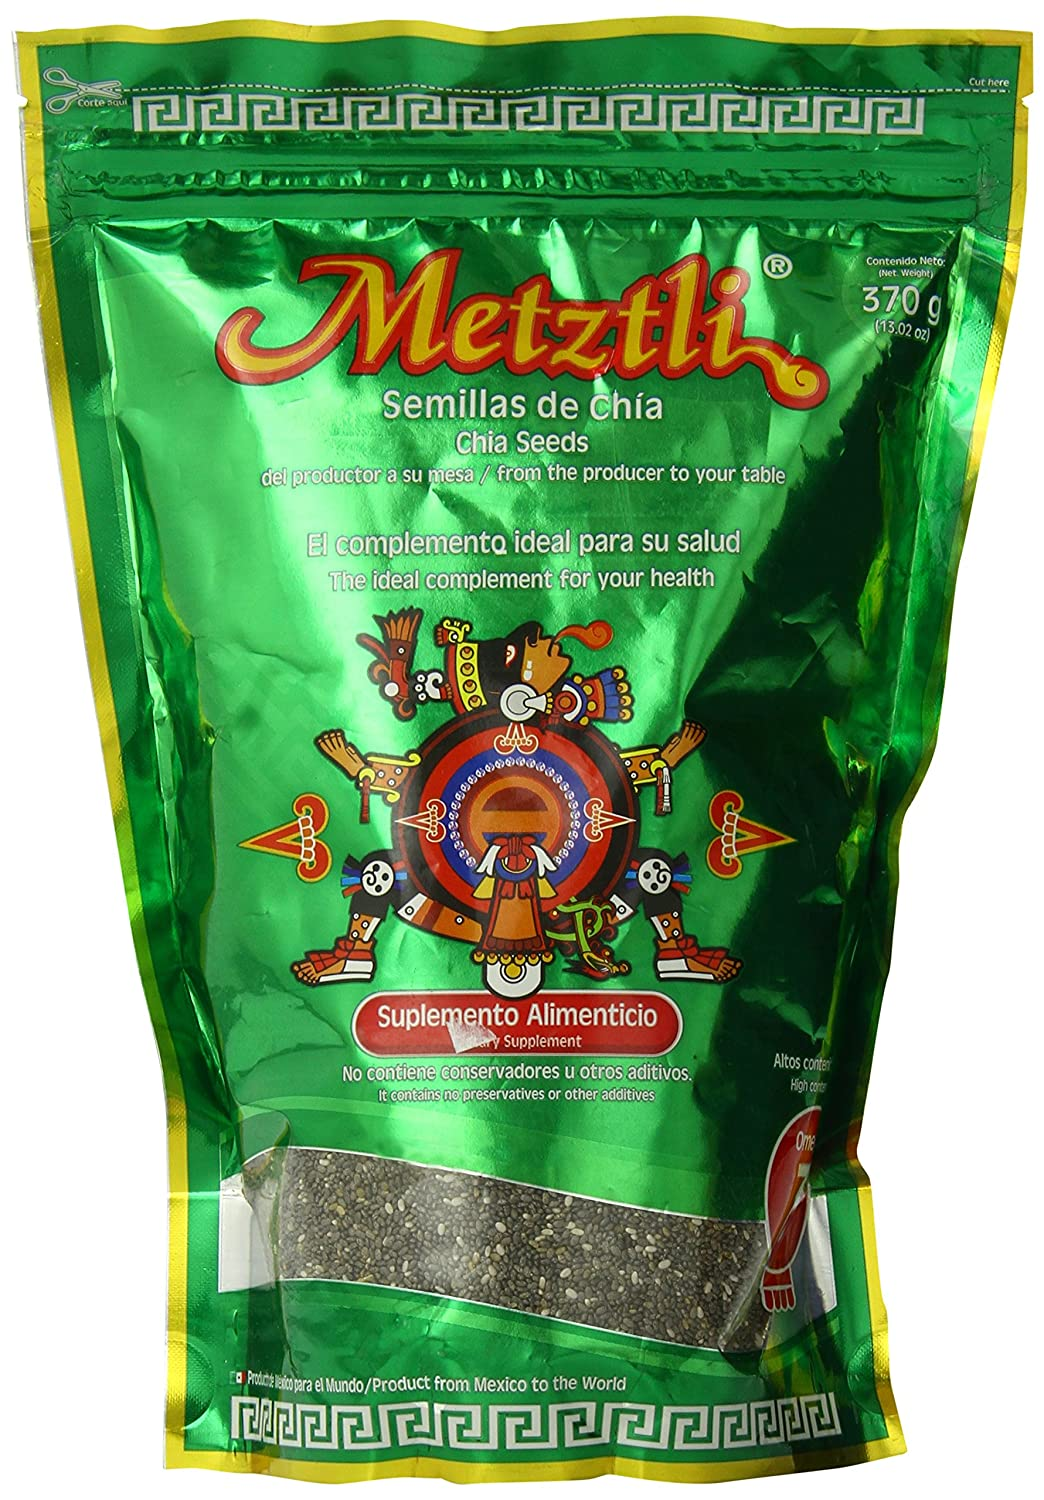 Amazon.com : Metztli Chia Seeds, 13.02 Ounce : Edible Seeds ...